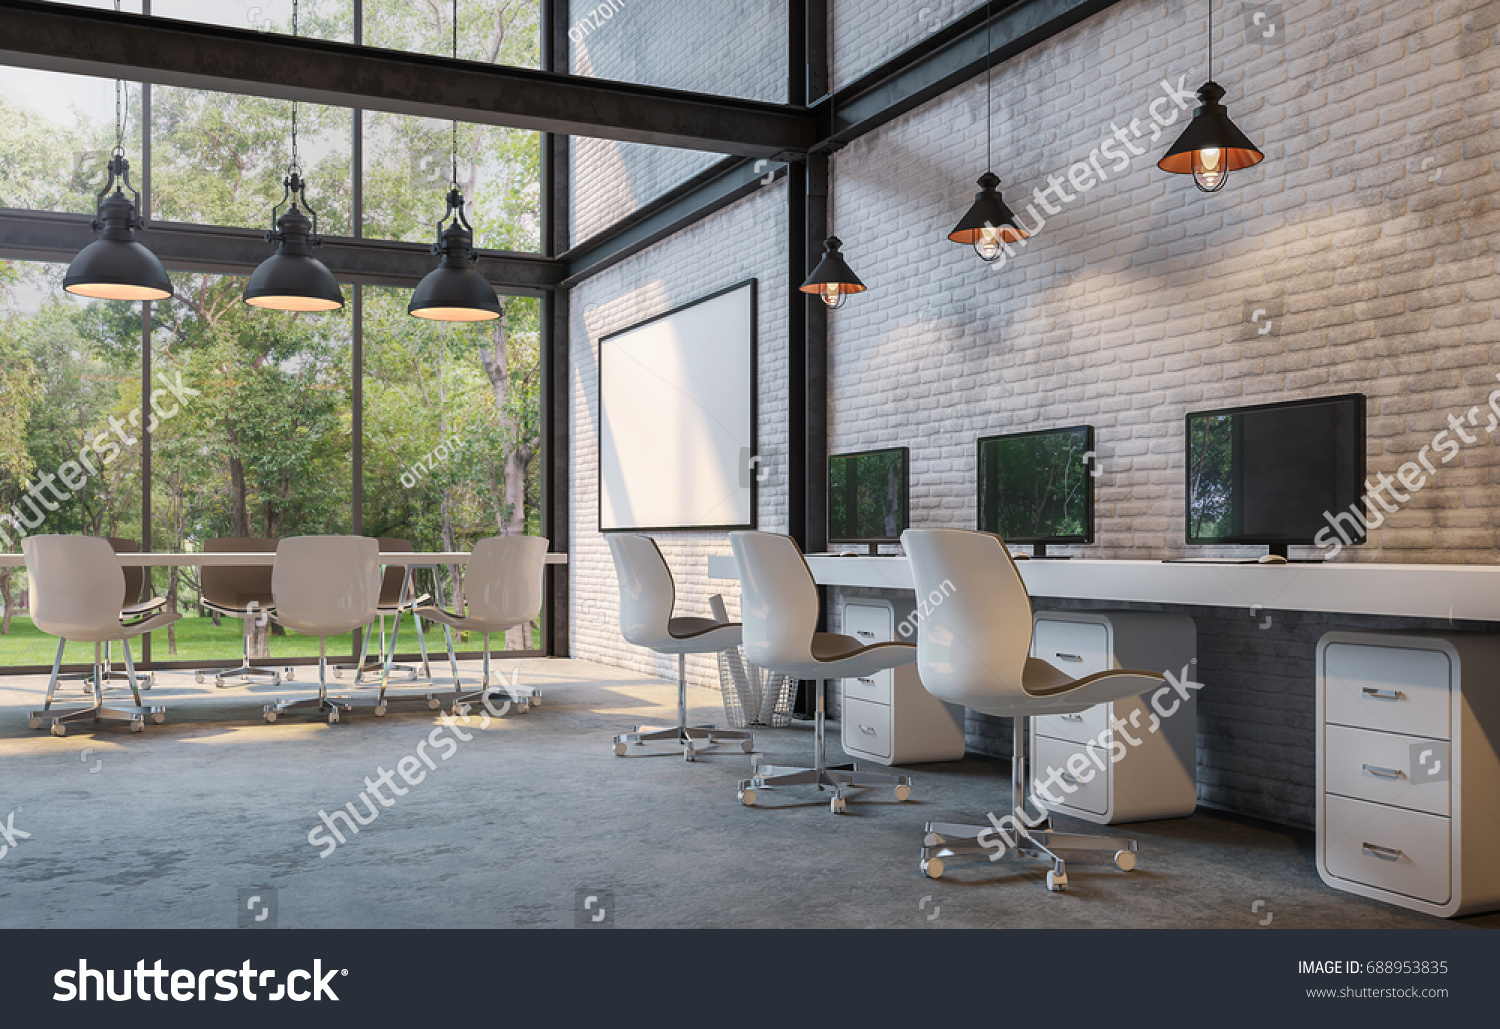 polished concrete furniture. Loft Style Office 3d Rendering Image.There Are White Brick Wall,polished Concrete Floor Polished Furniture